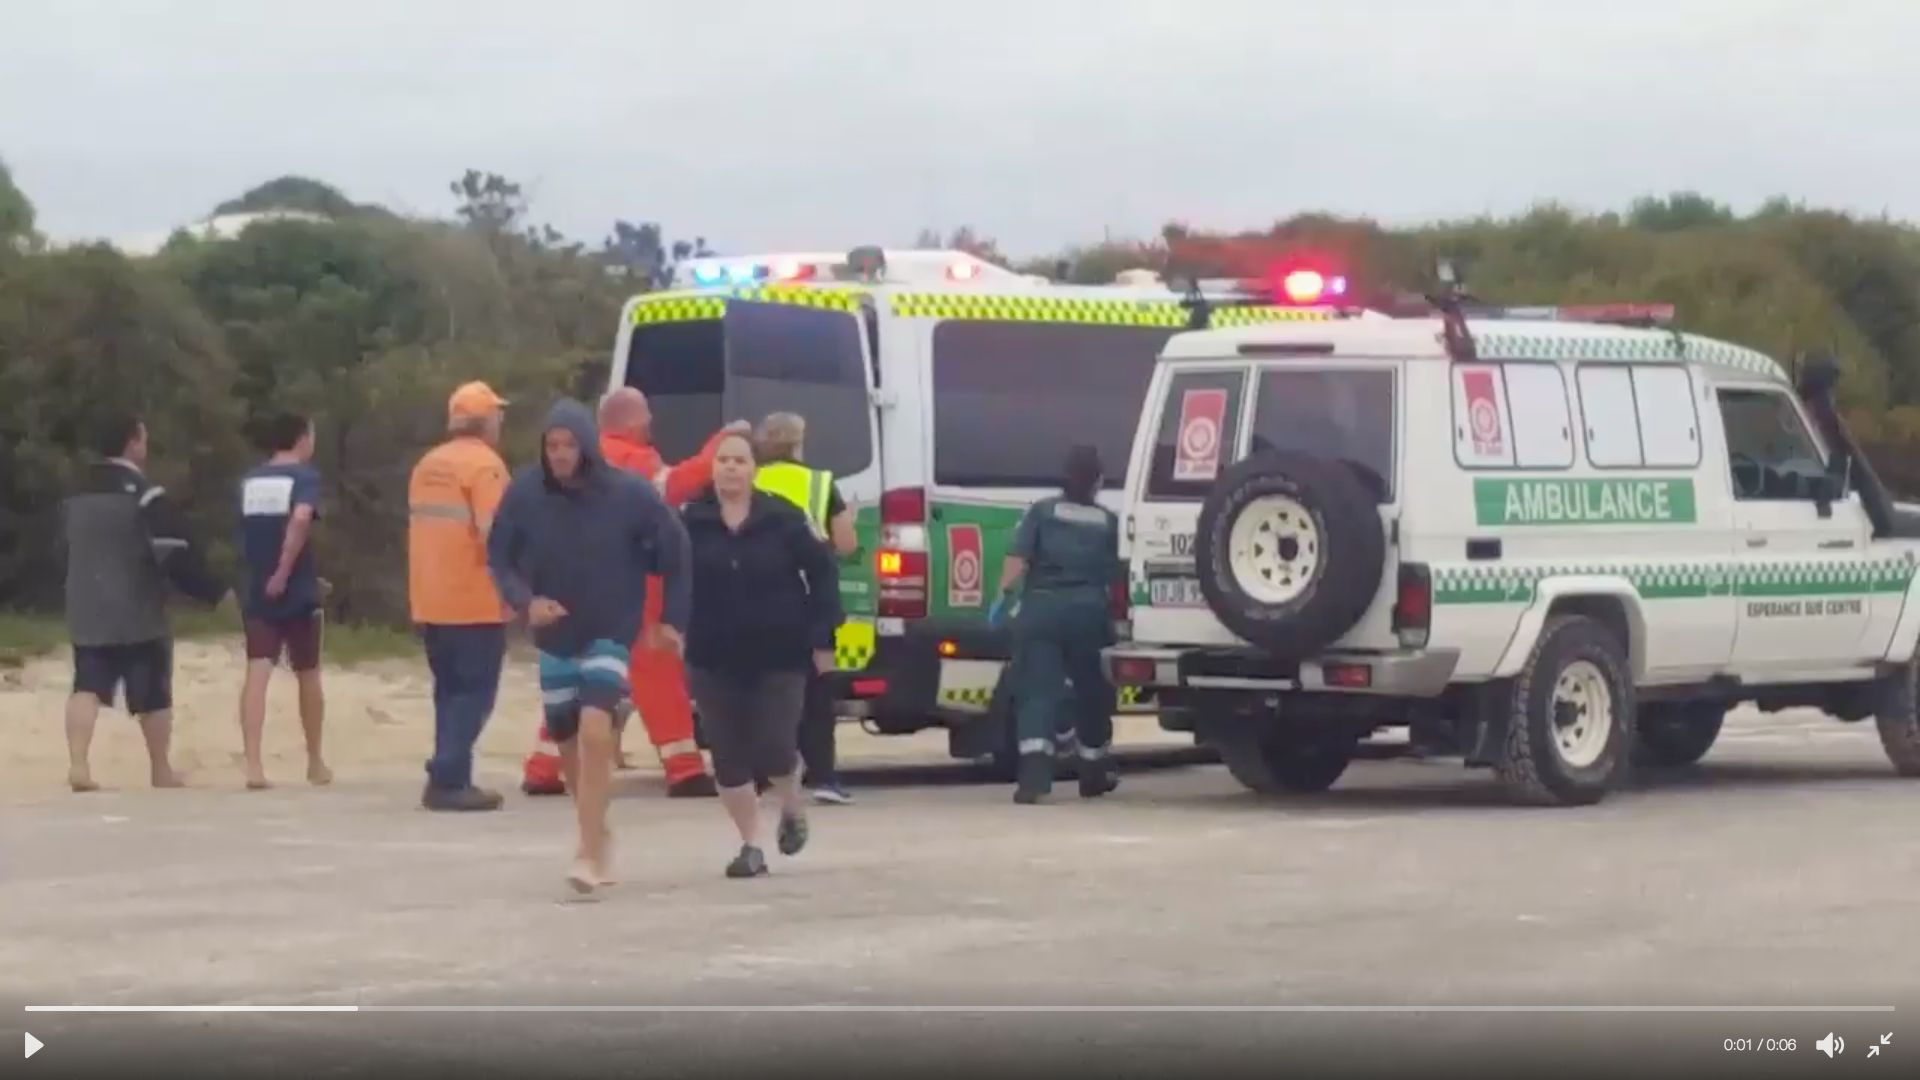 A 17-year-old died after being attacked by a shark in Western Australia on Sunday